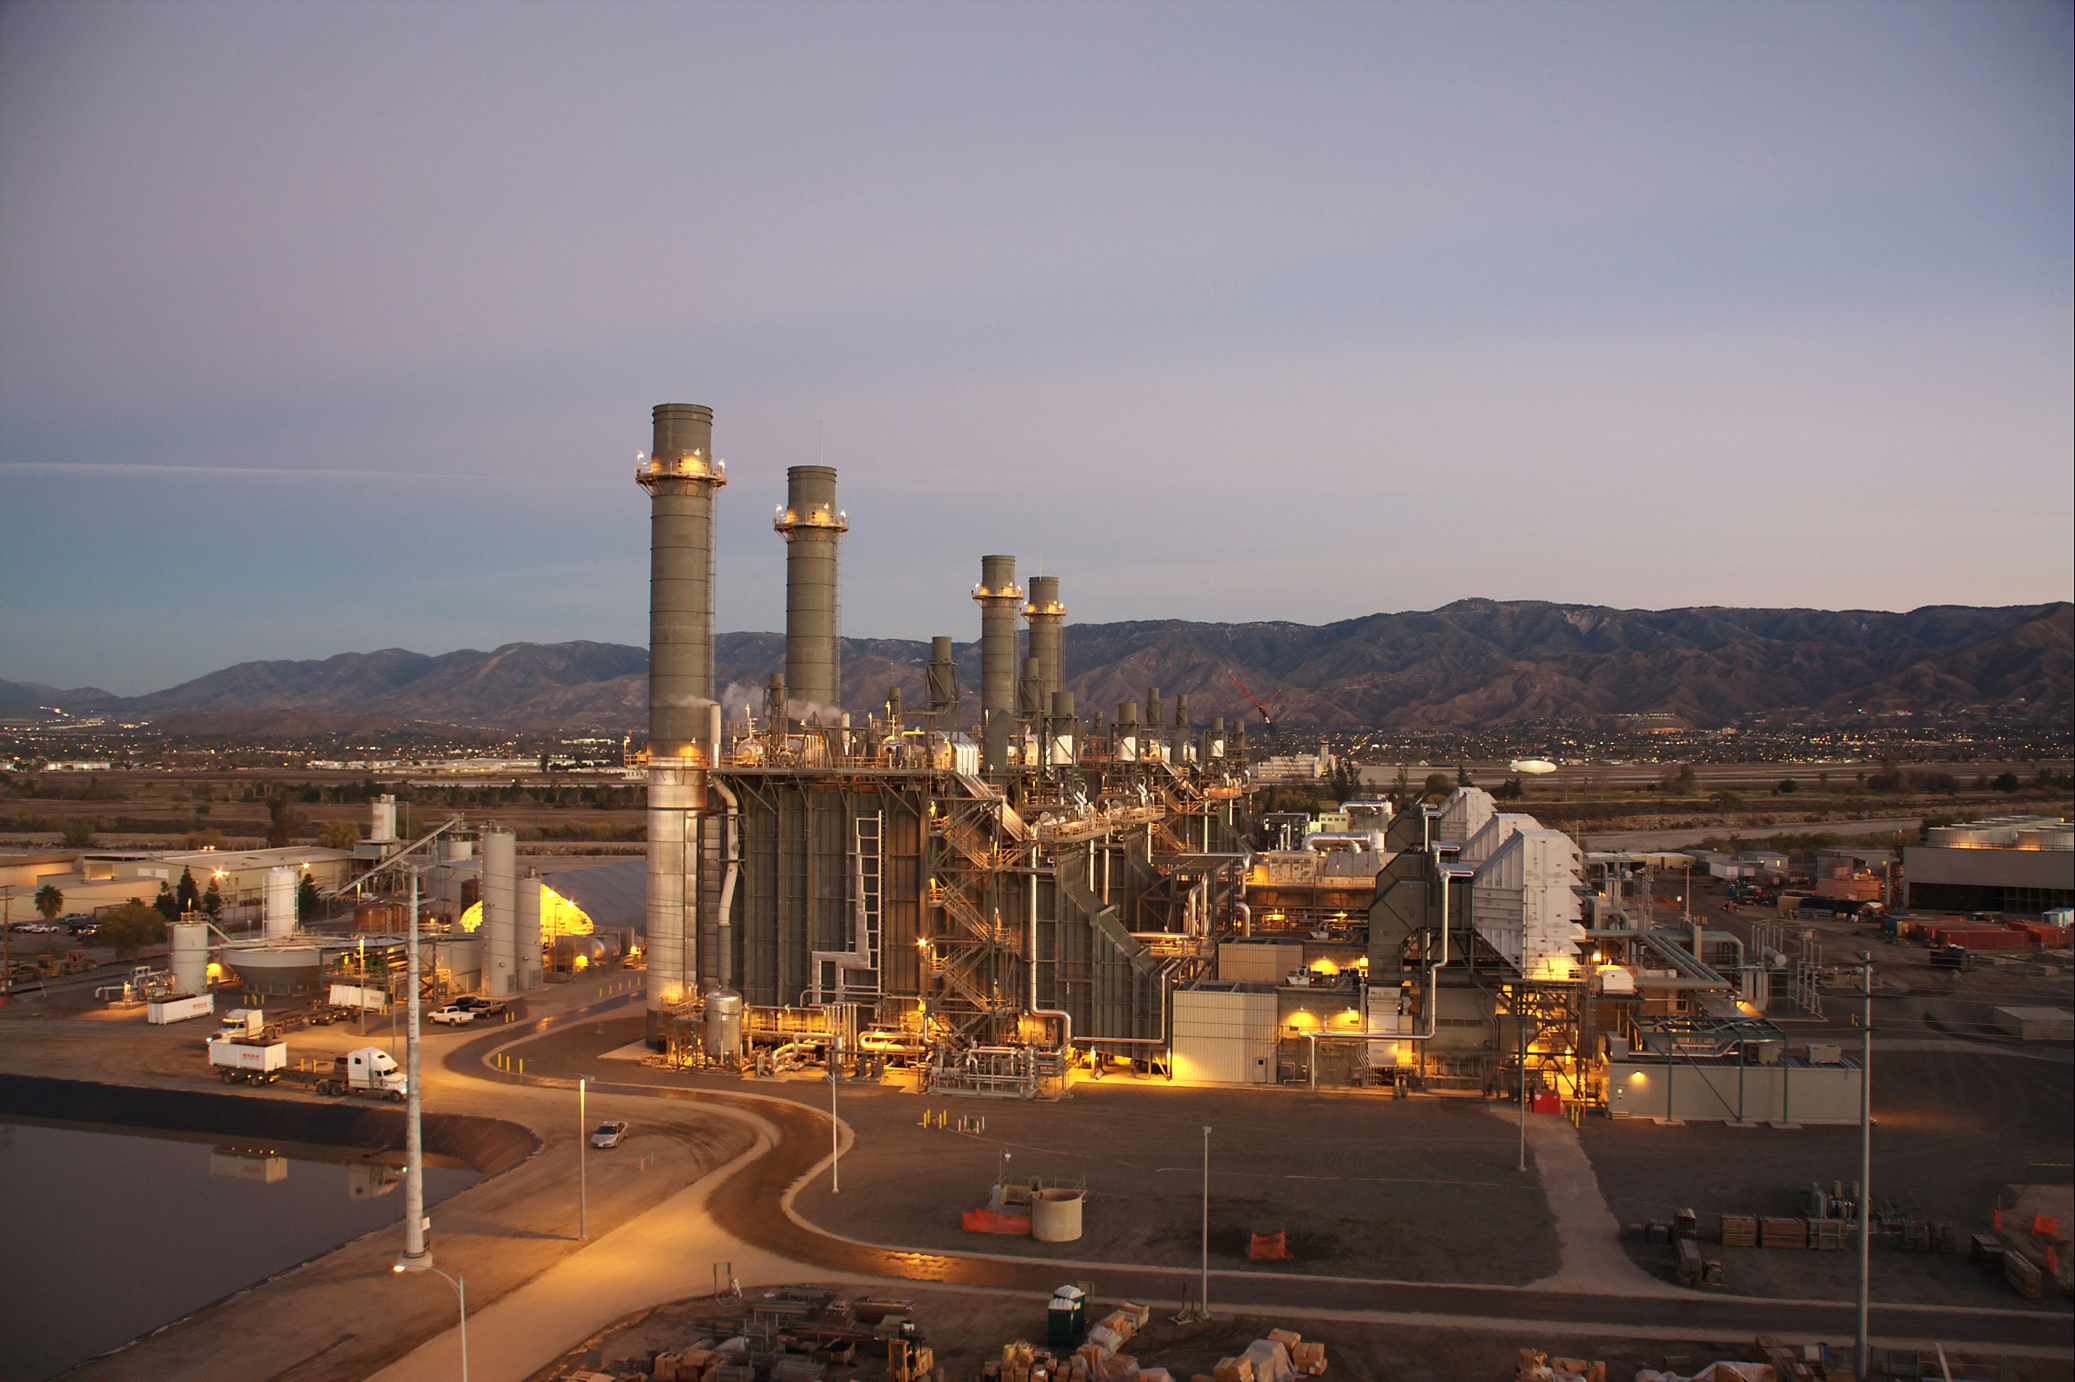 Upgrade to California bined Cycle Plant to Boost Efficiency